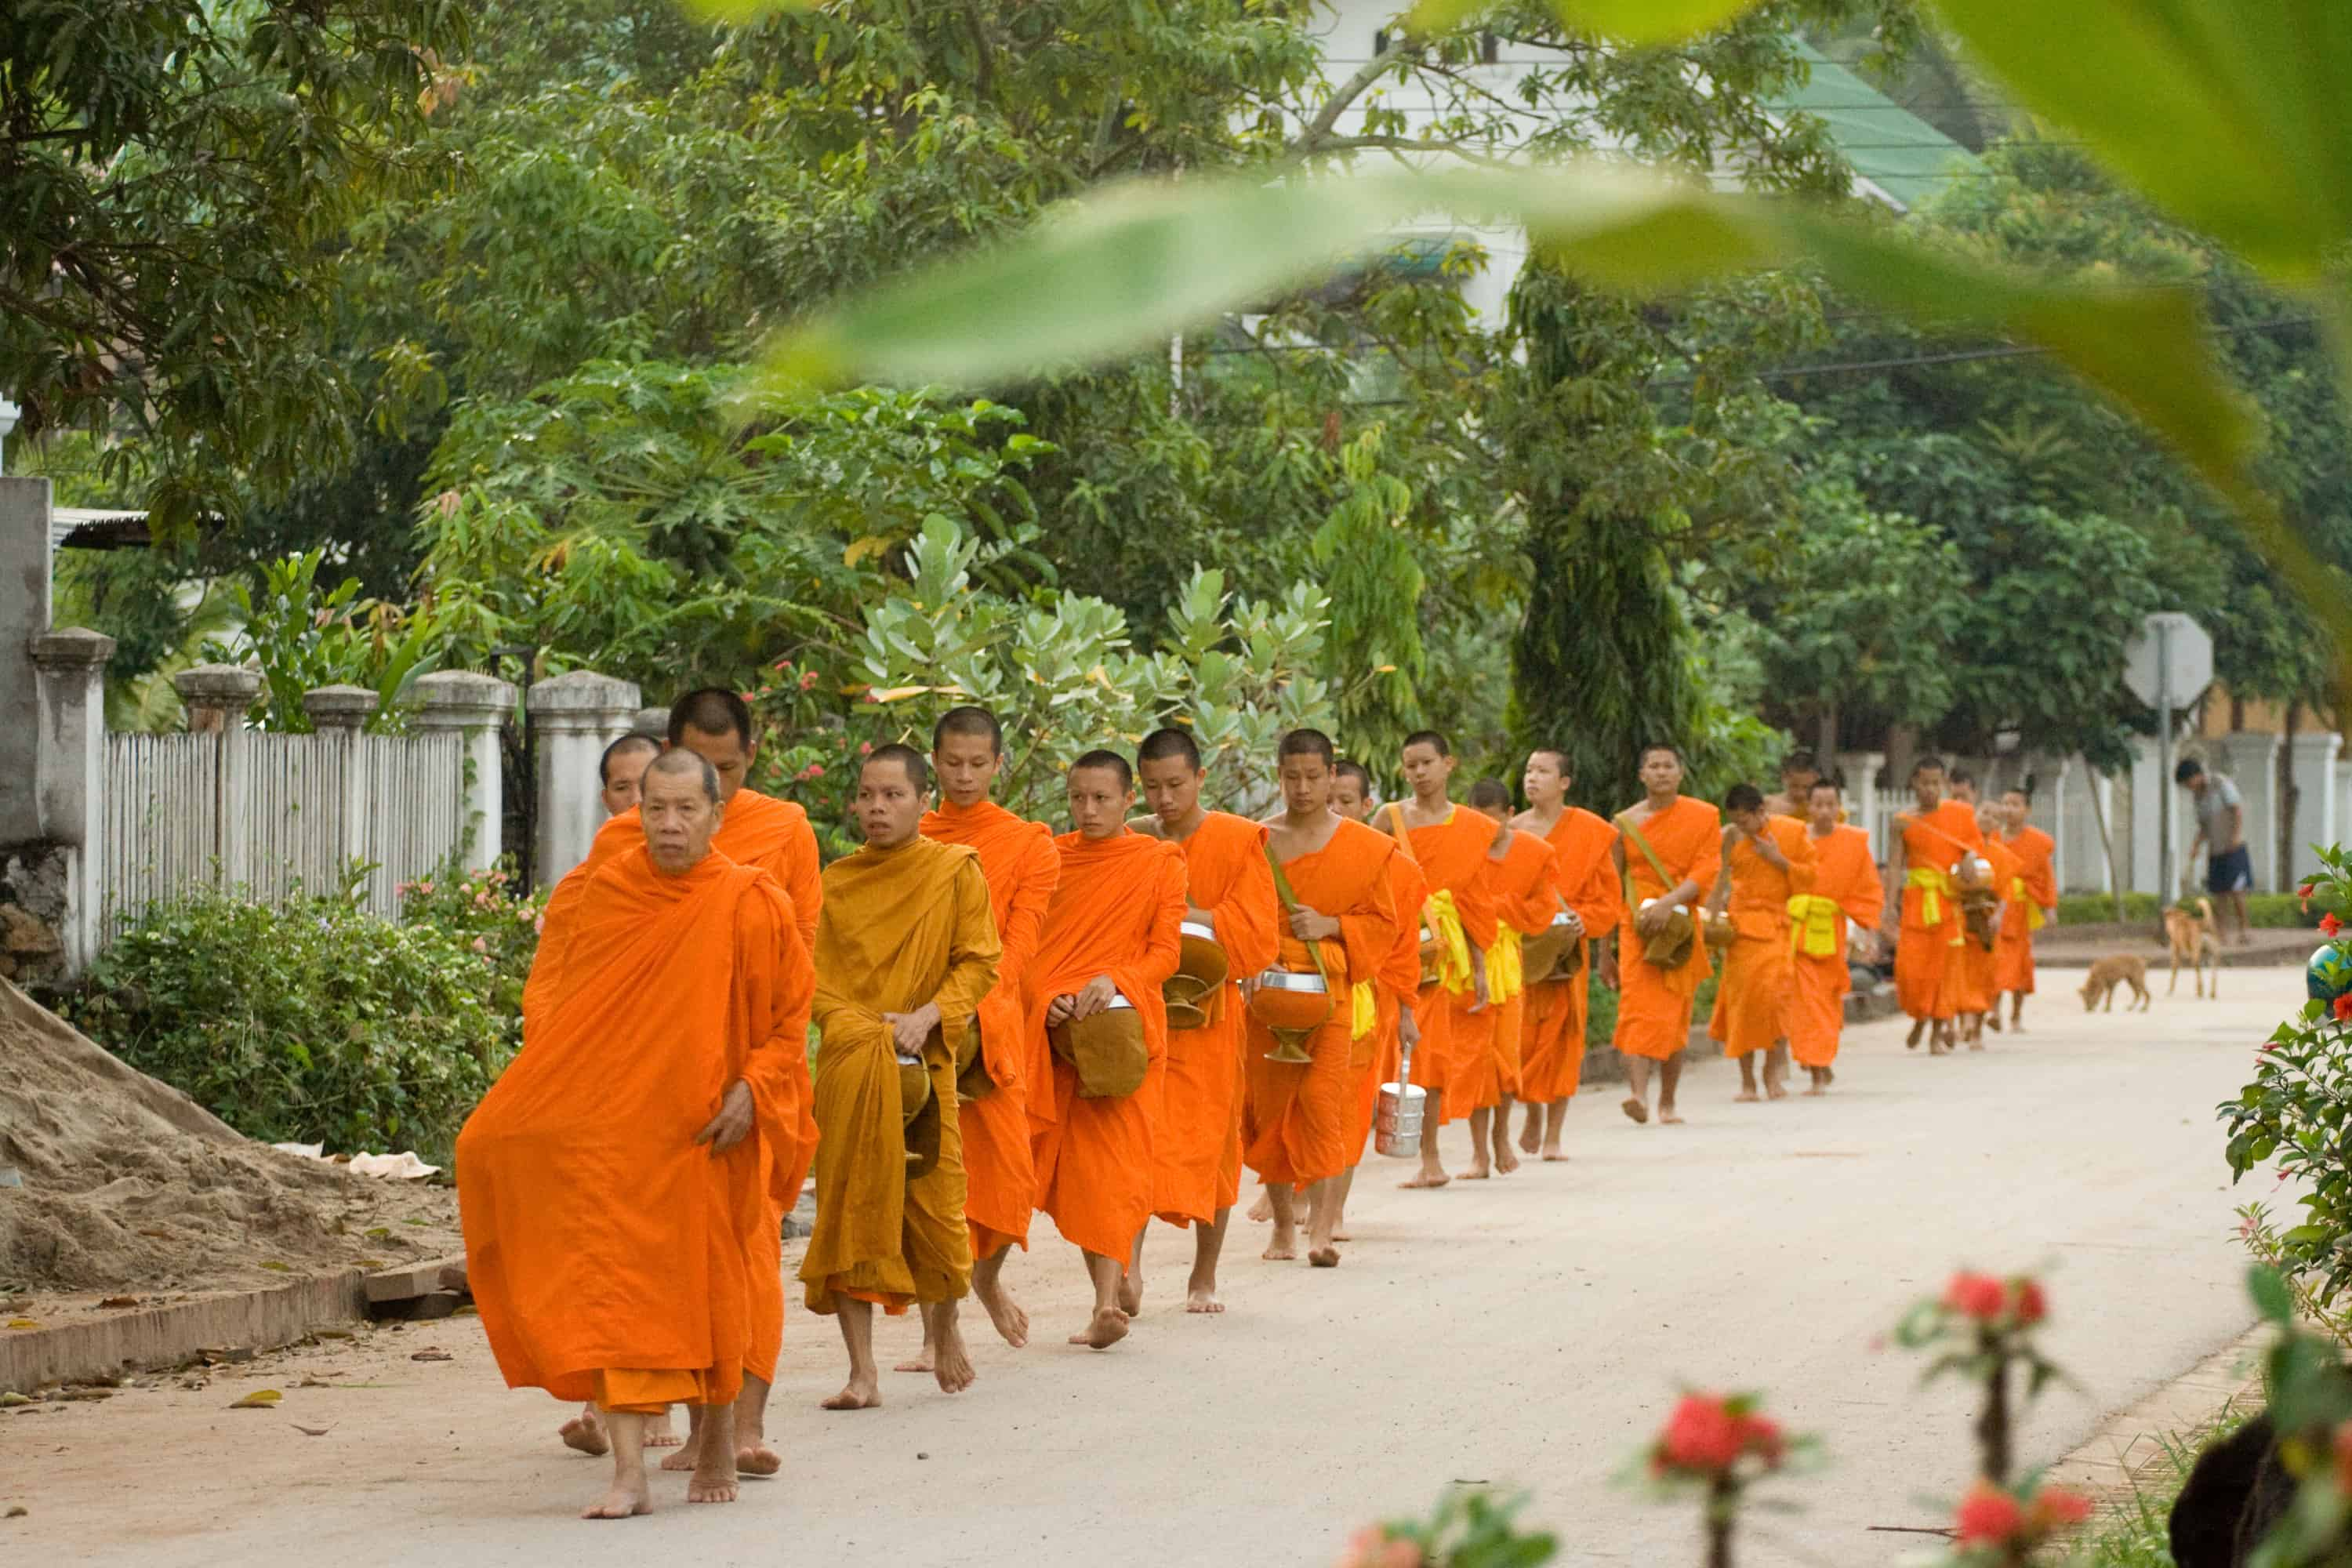 Experience Buddhism in Chiang Mai with food donations to monks in the morning